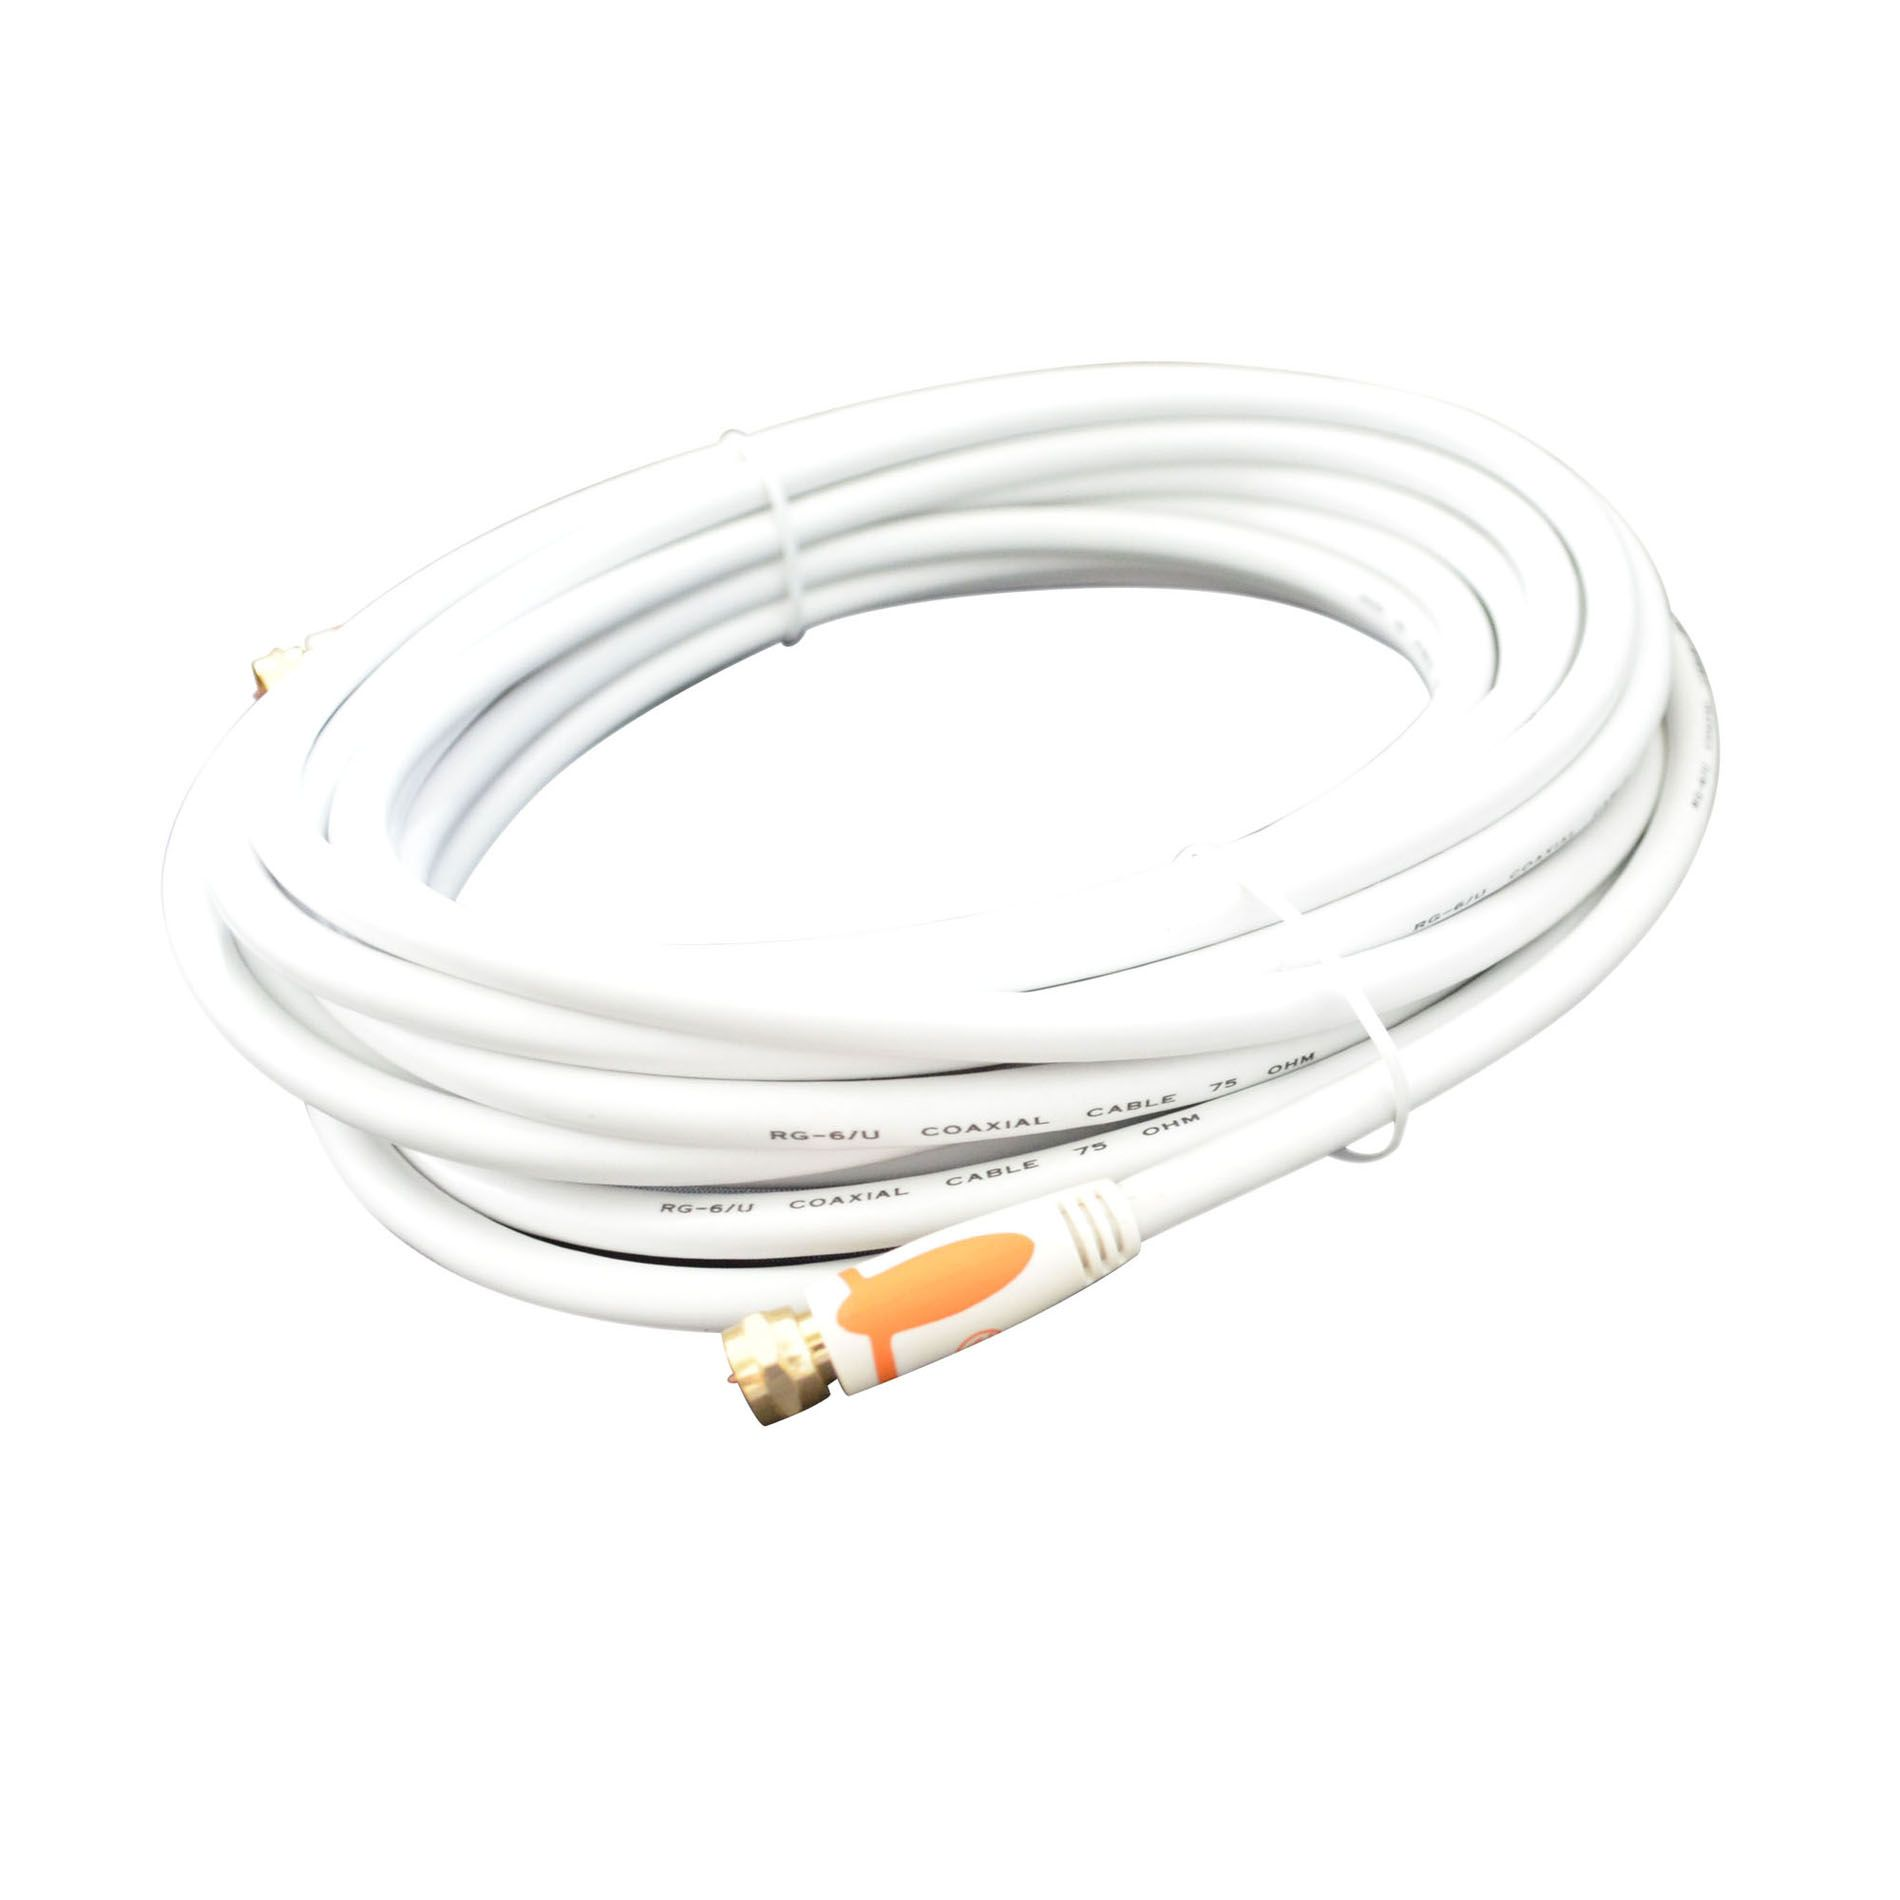 Alphaline™ 50' RG6 Coaxial Cable - White